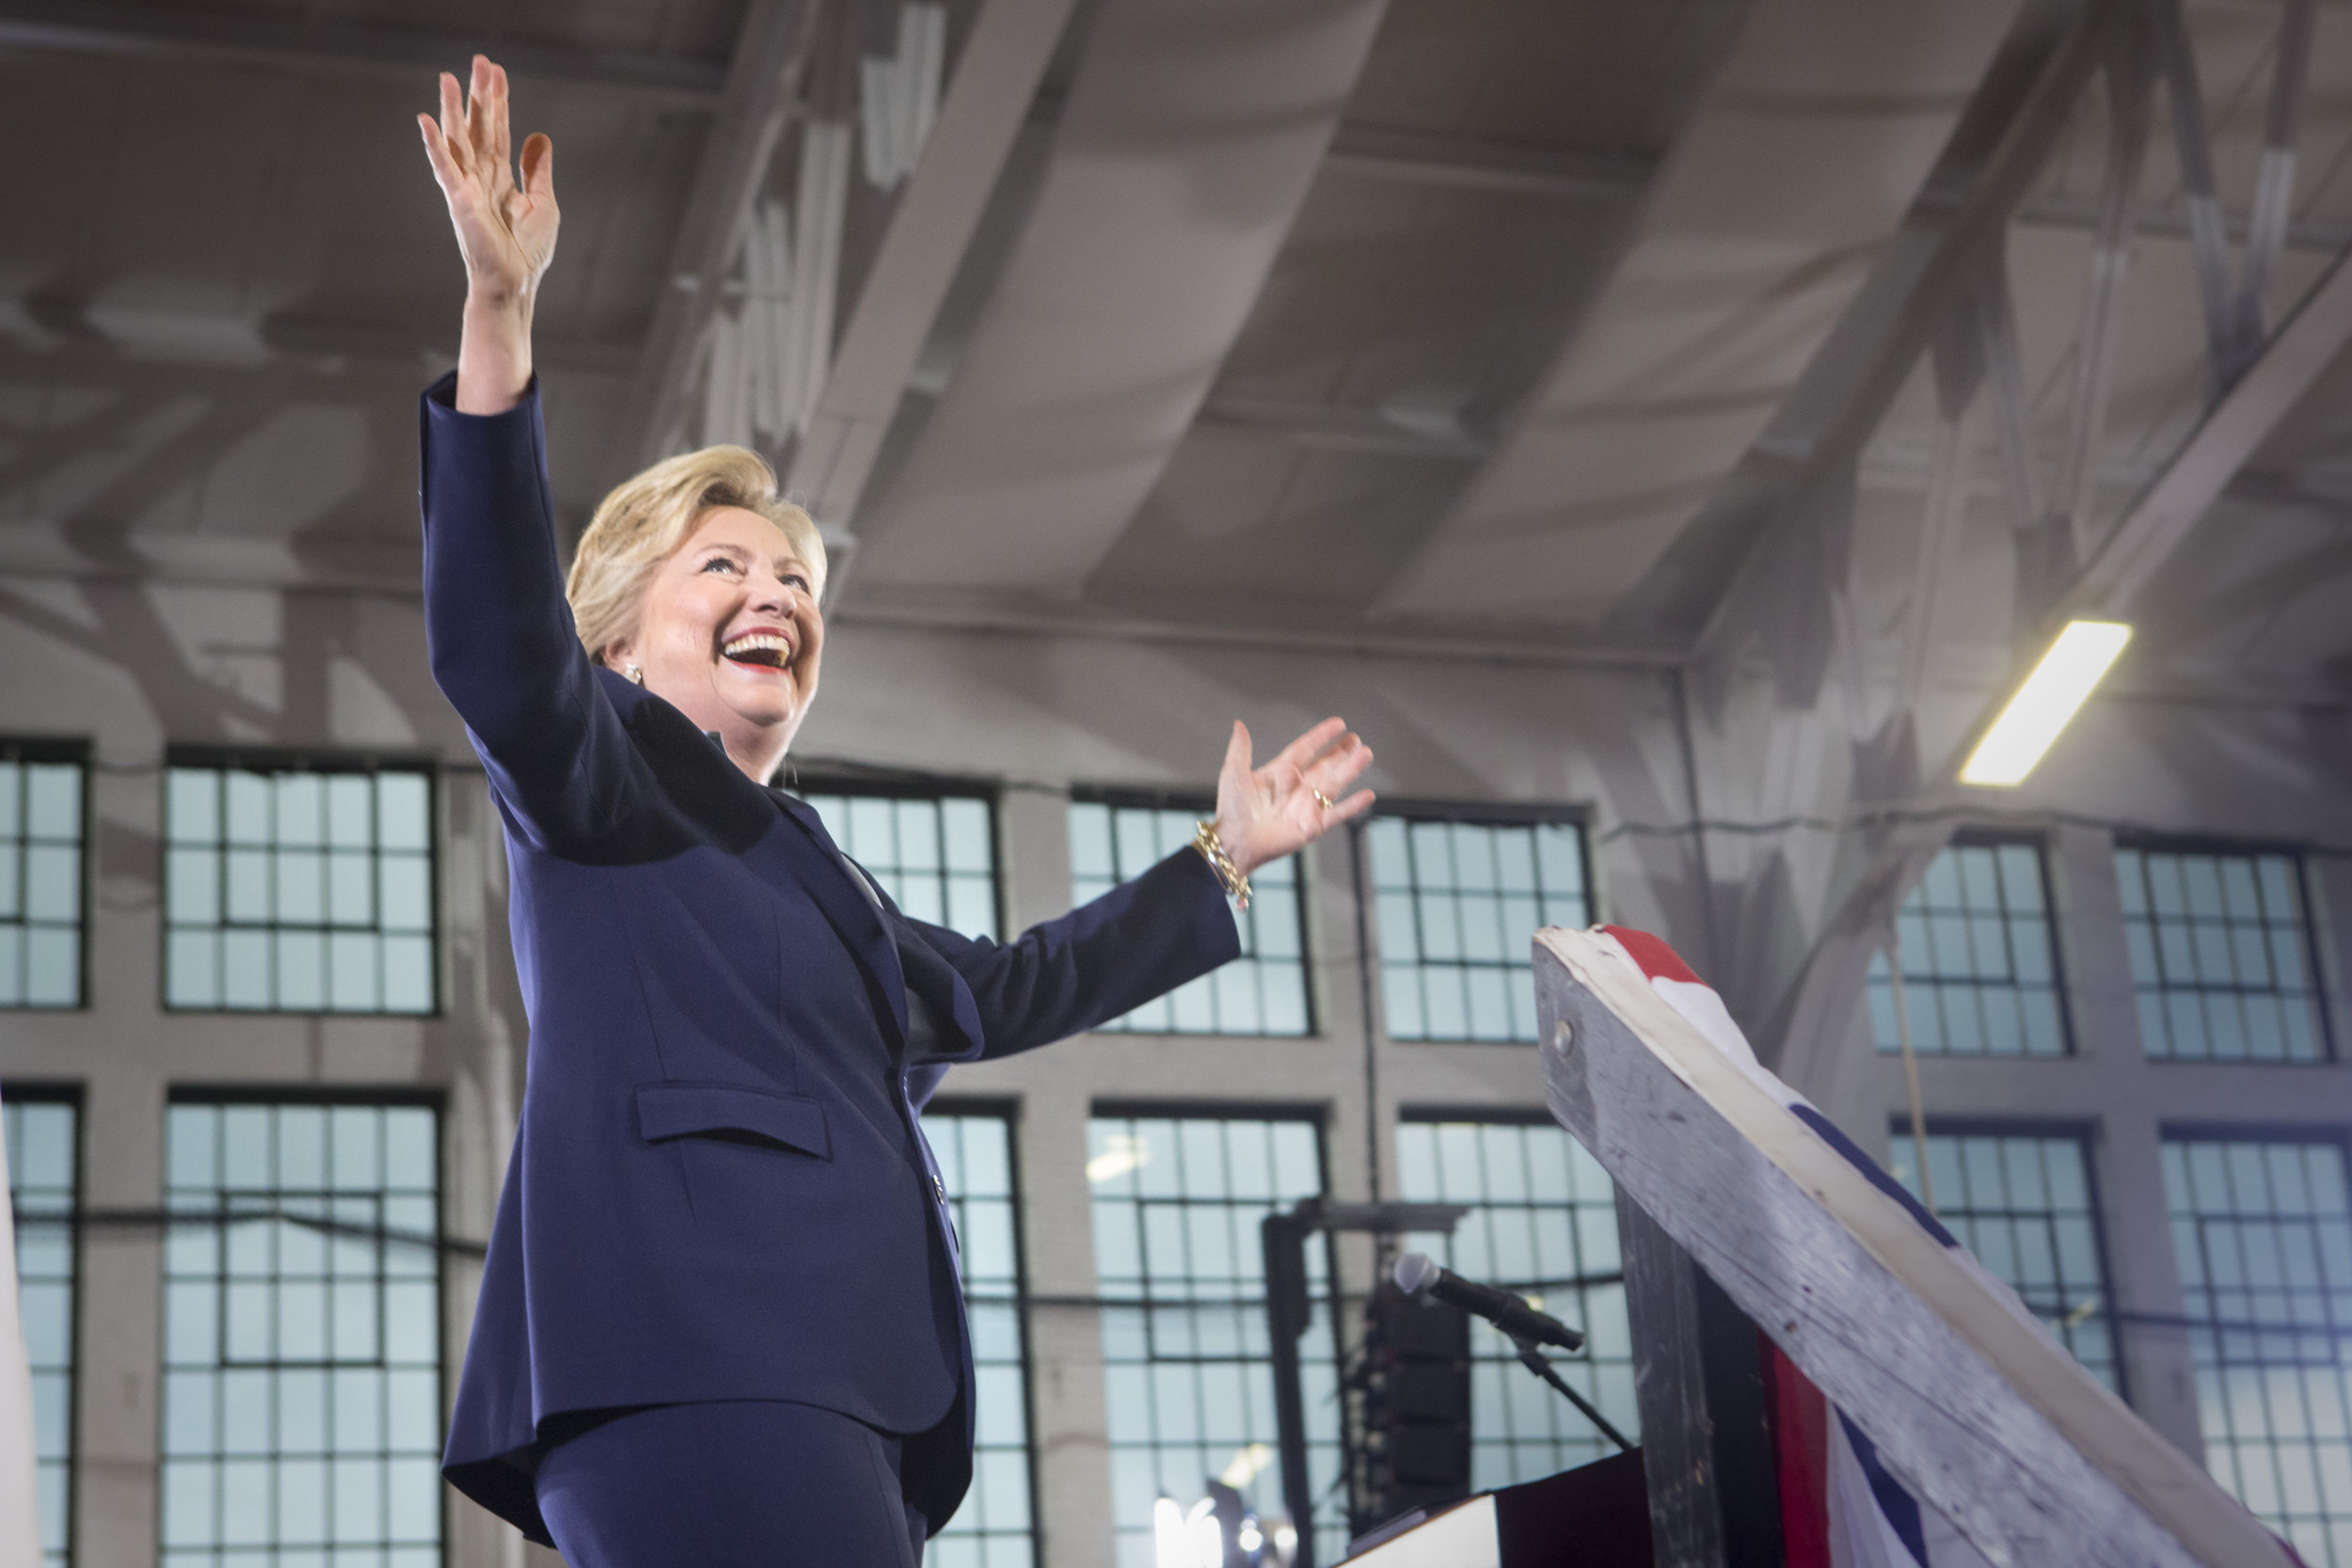 10032016_BJM_Hillary_Campaigns_in_Akron_Ohio_05.jpg